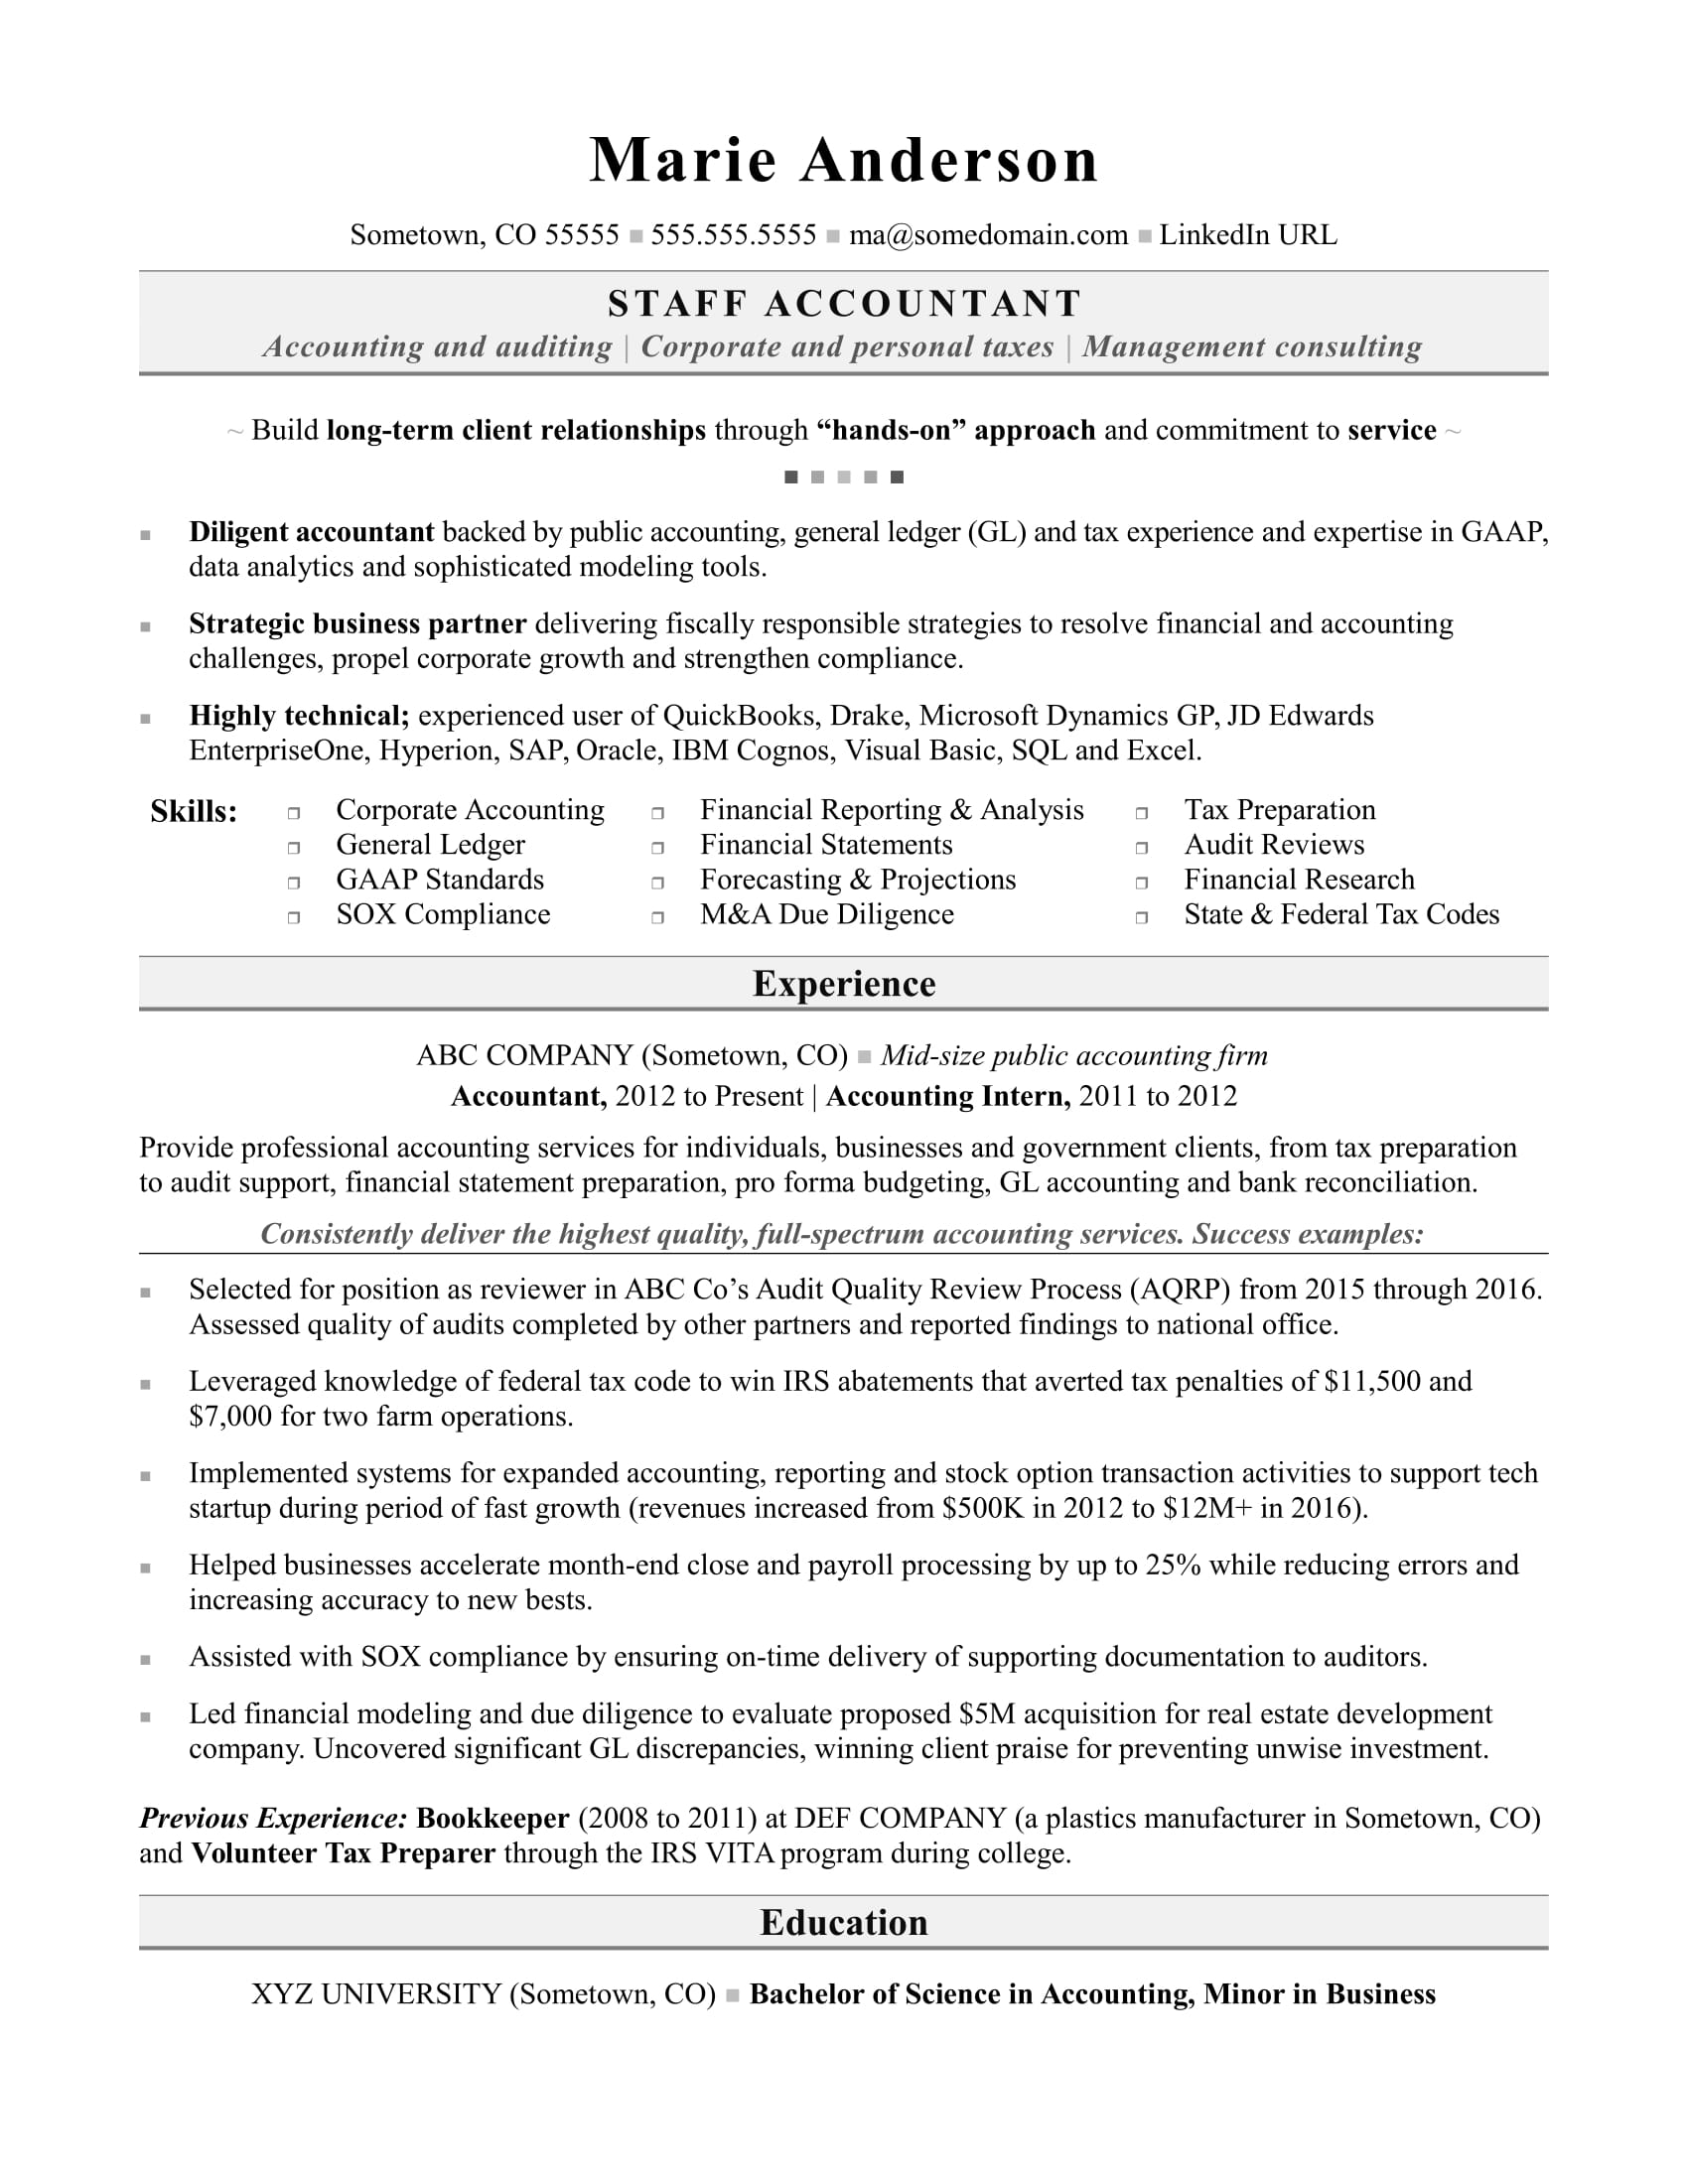 accounting resume sample monster professional accountant nicu job description assistant Resume Professional Accounting Resume